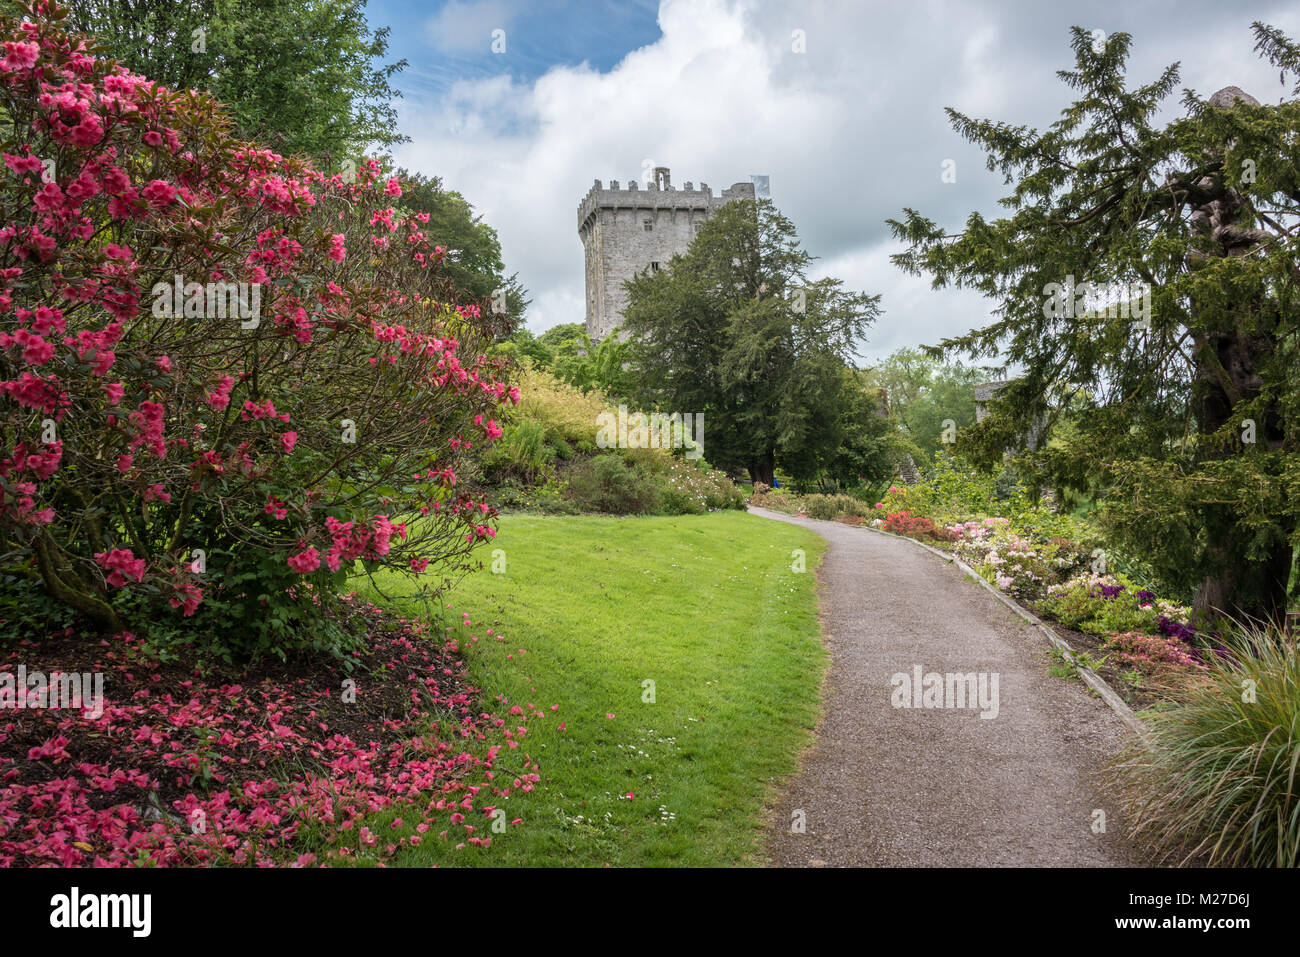 Blarney Castle and Gardens, County Cork, Ireland - Stock Image